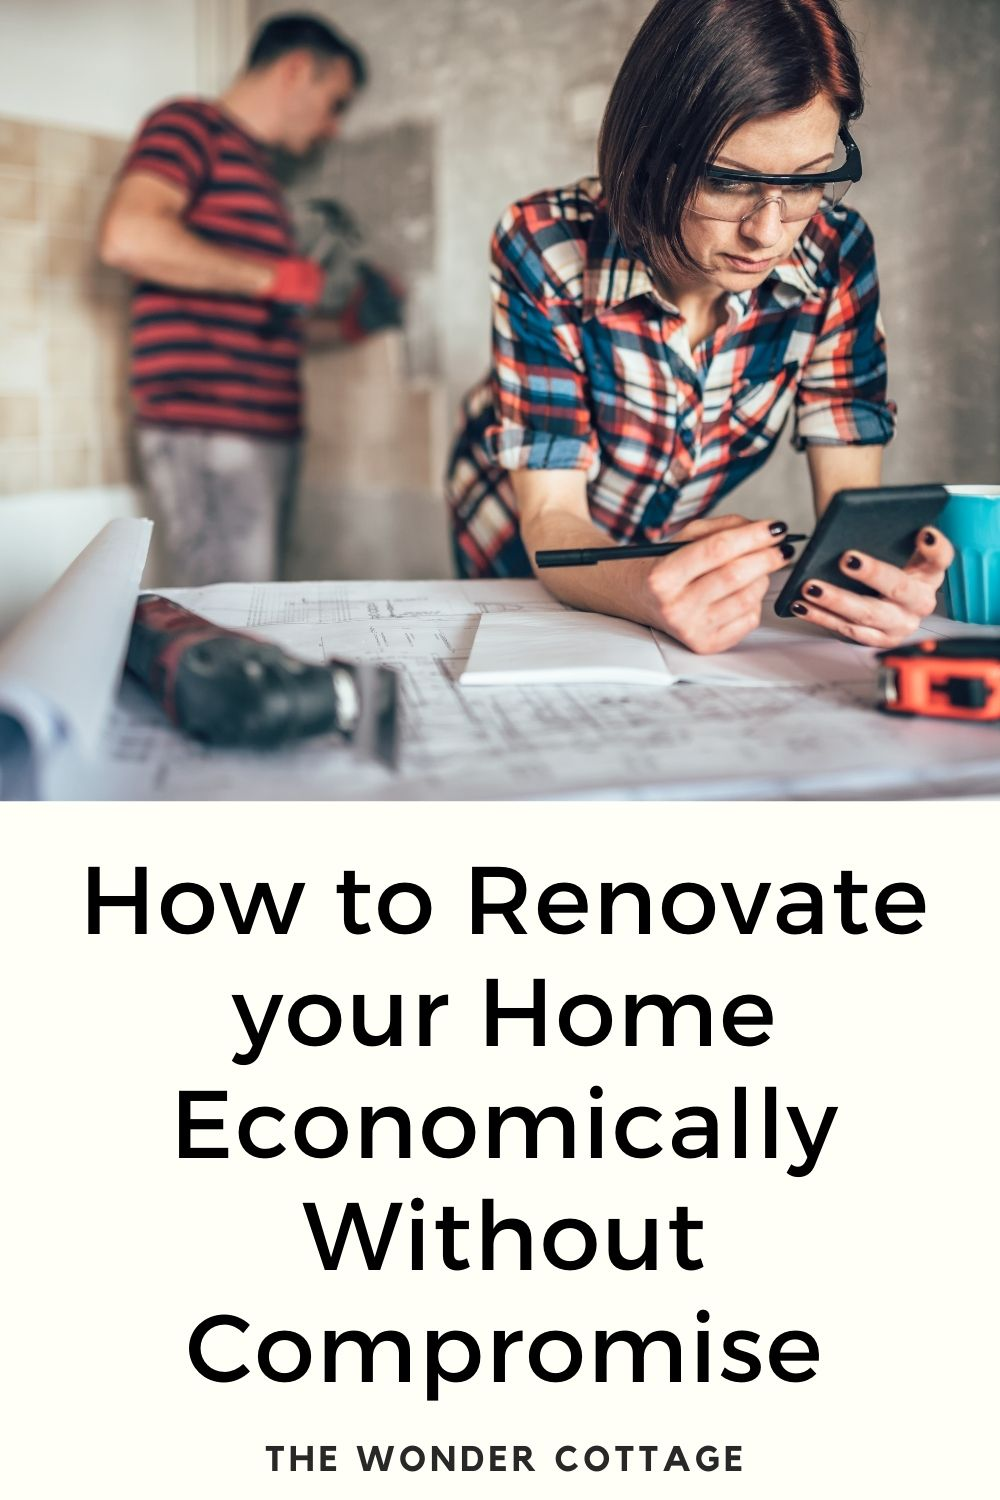 how to renovate economically without compromise